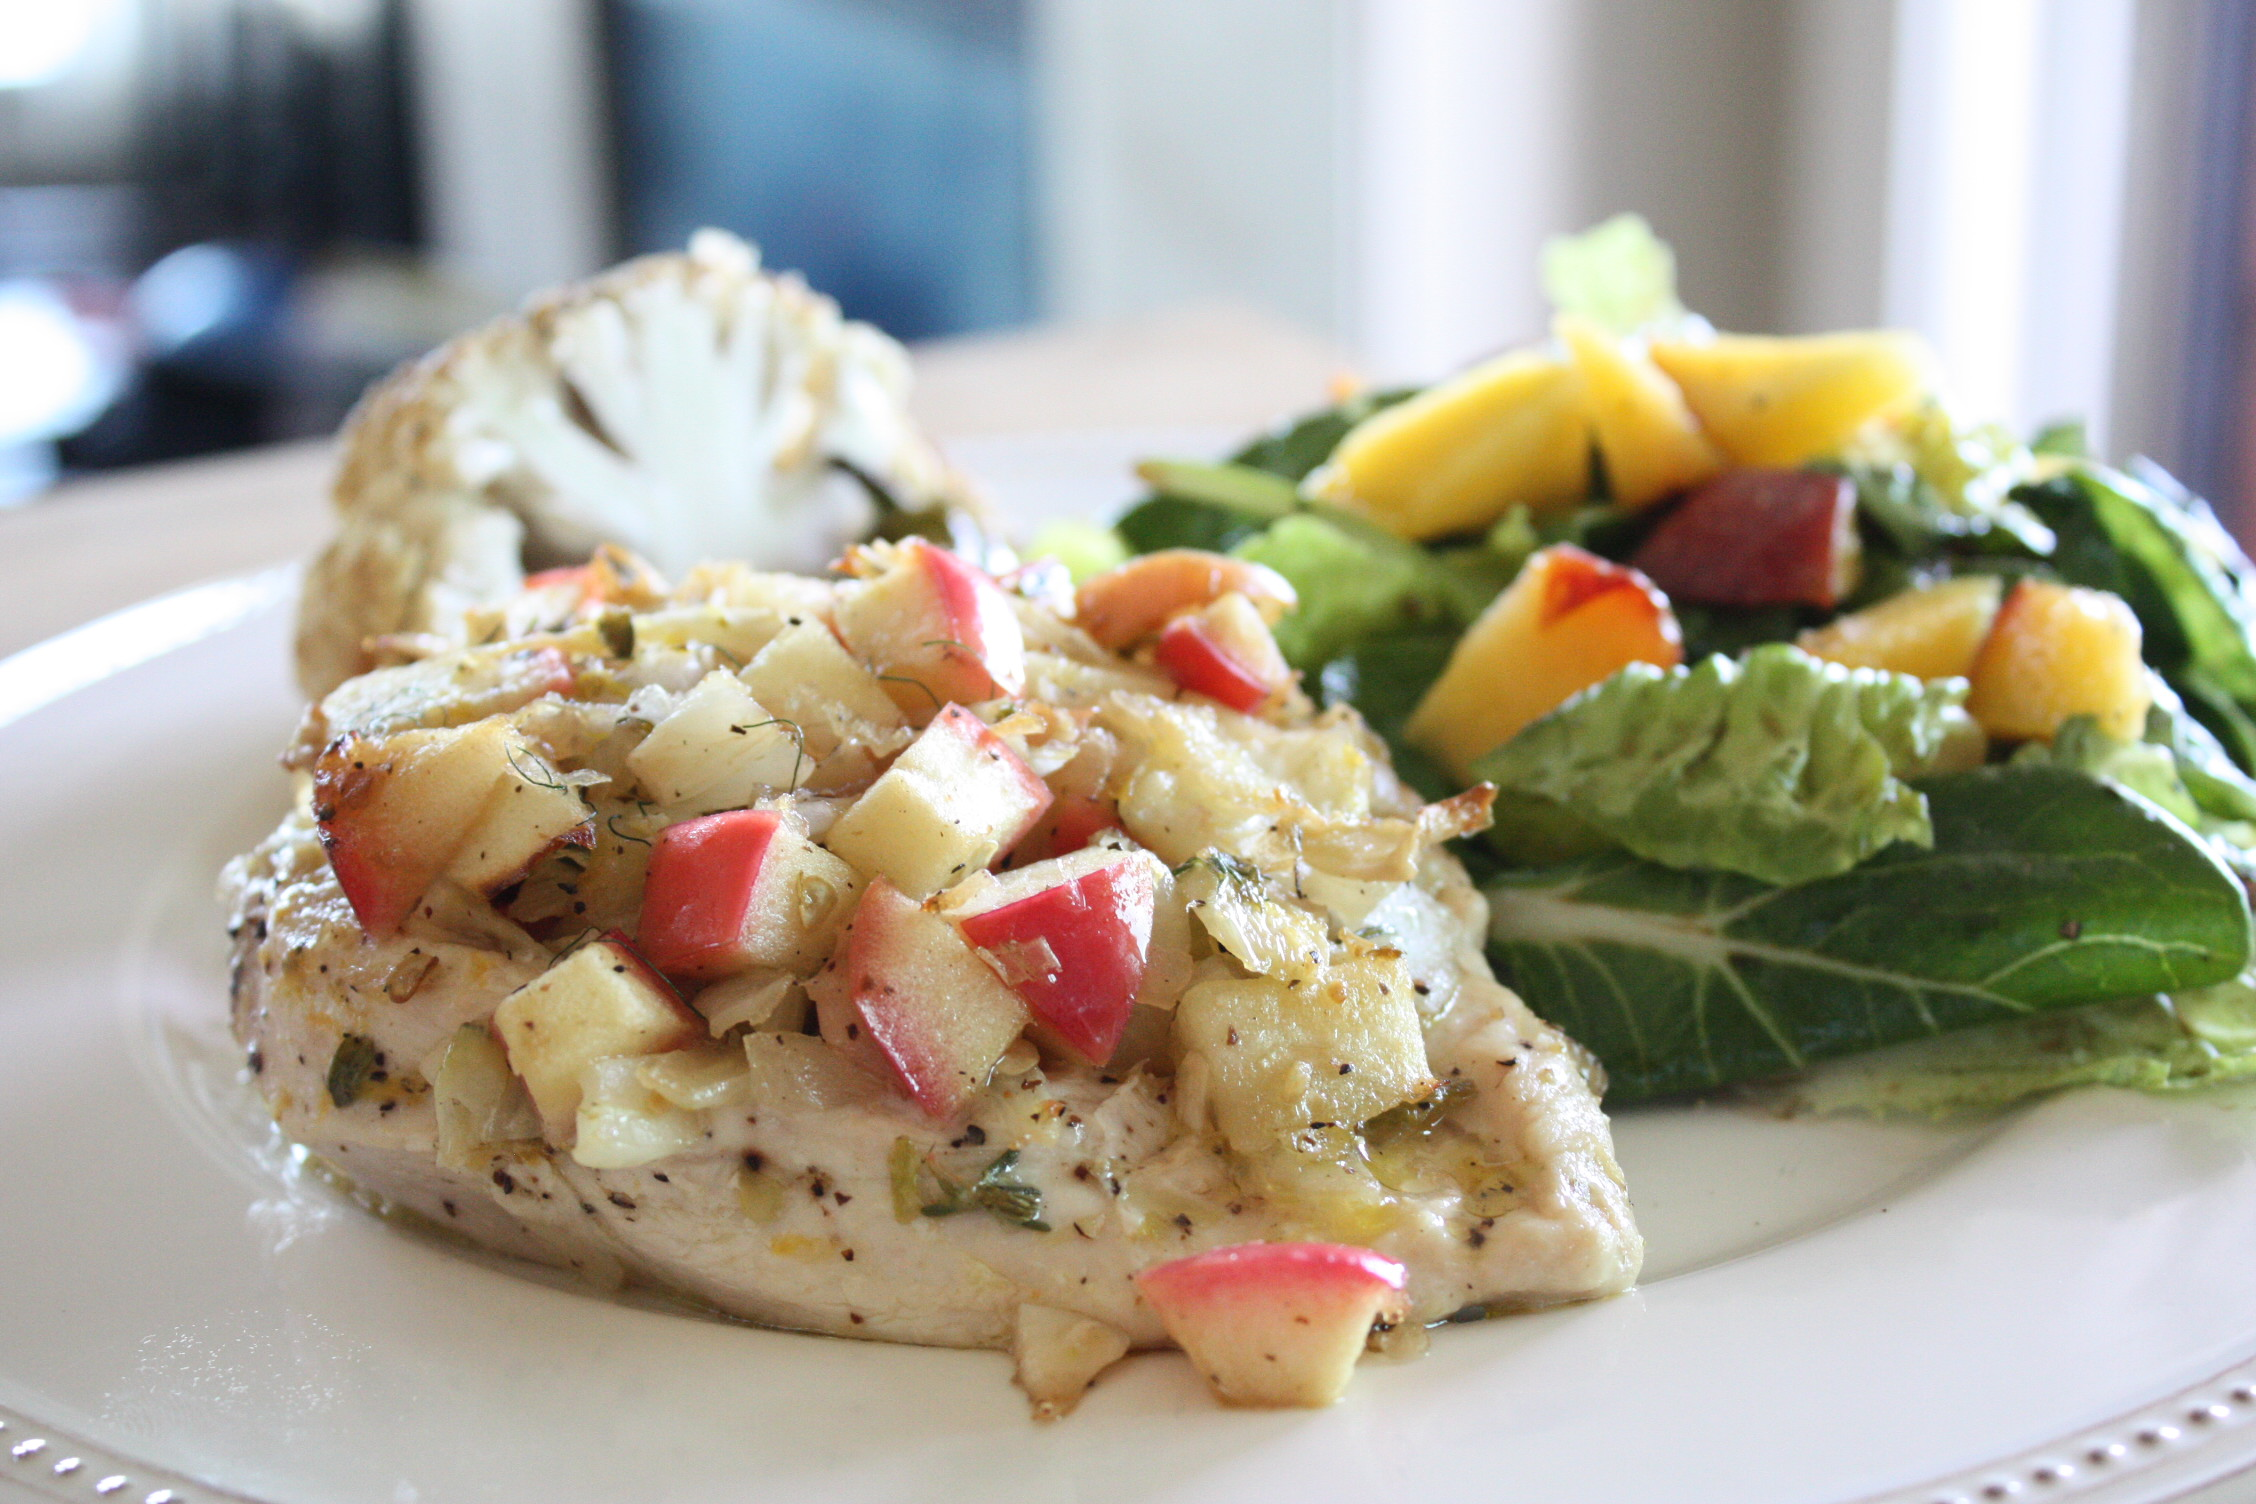 stuffed chicken with side salad